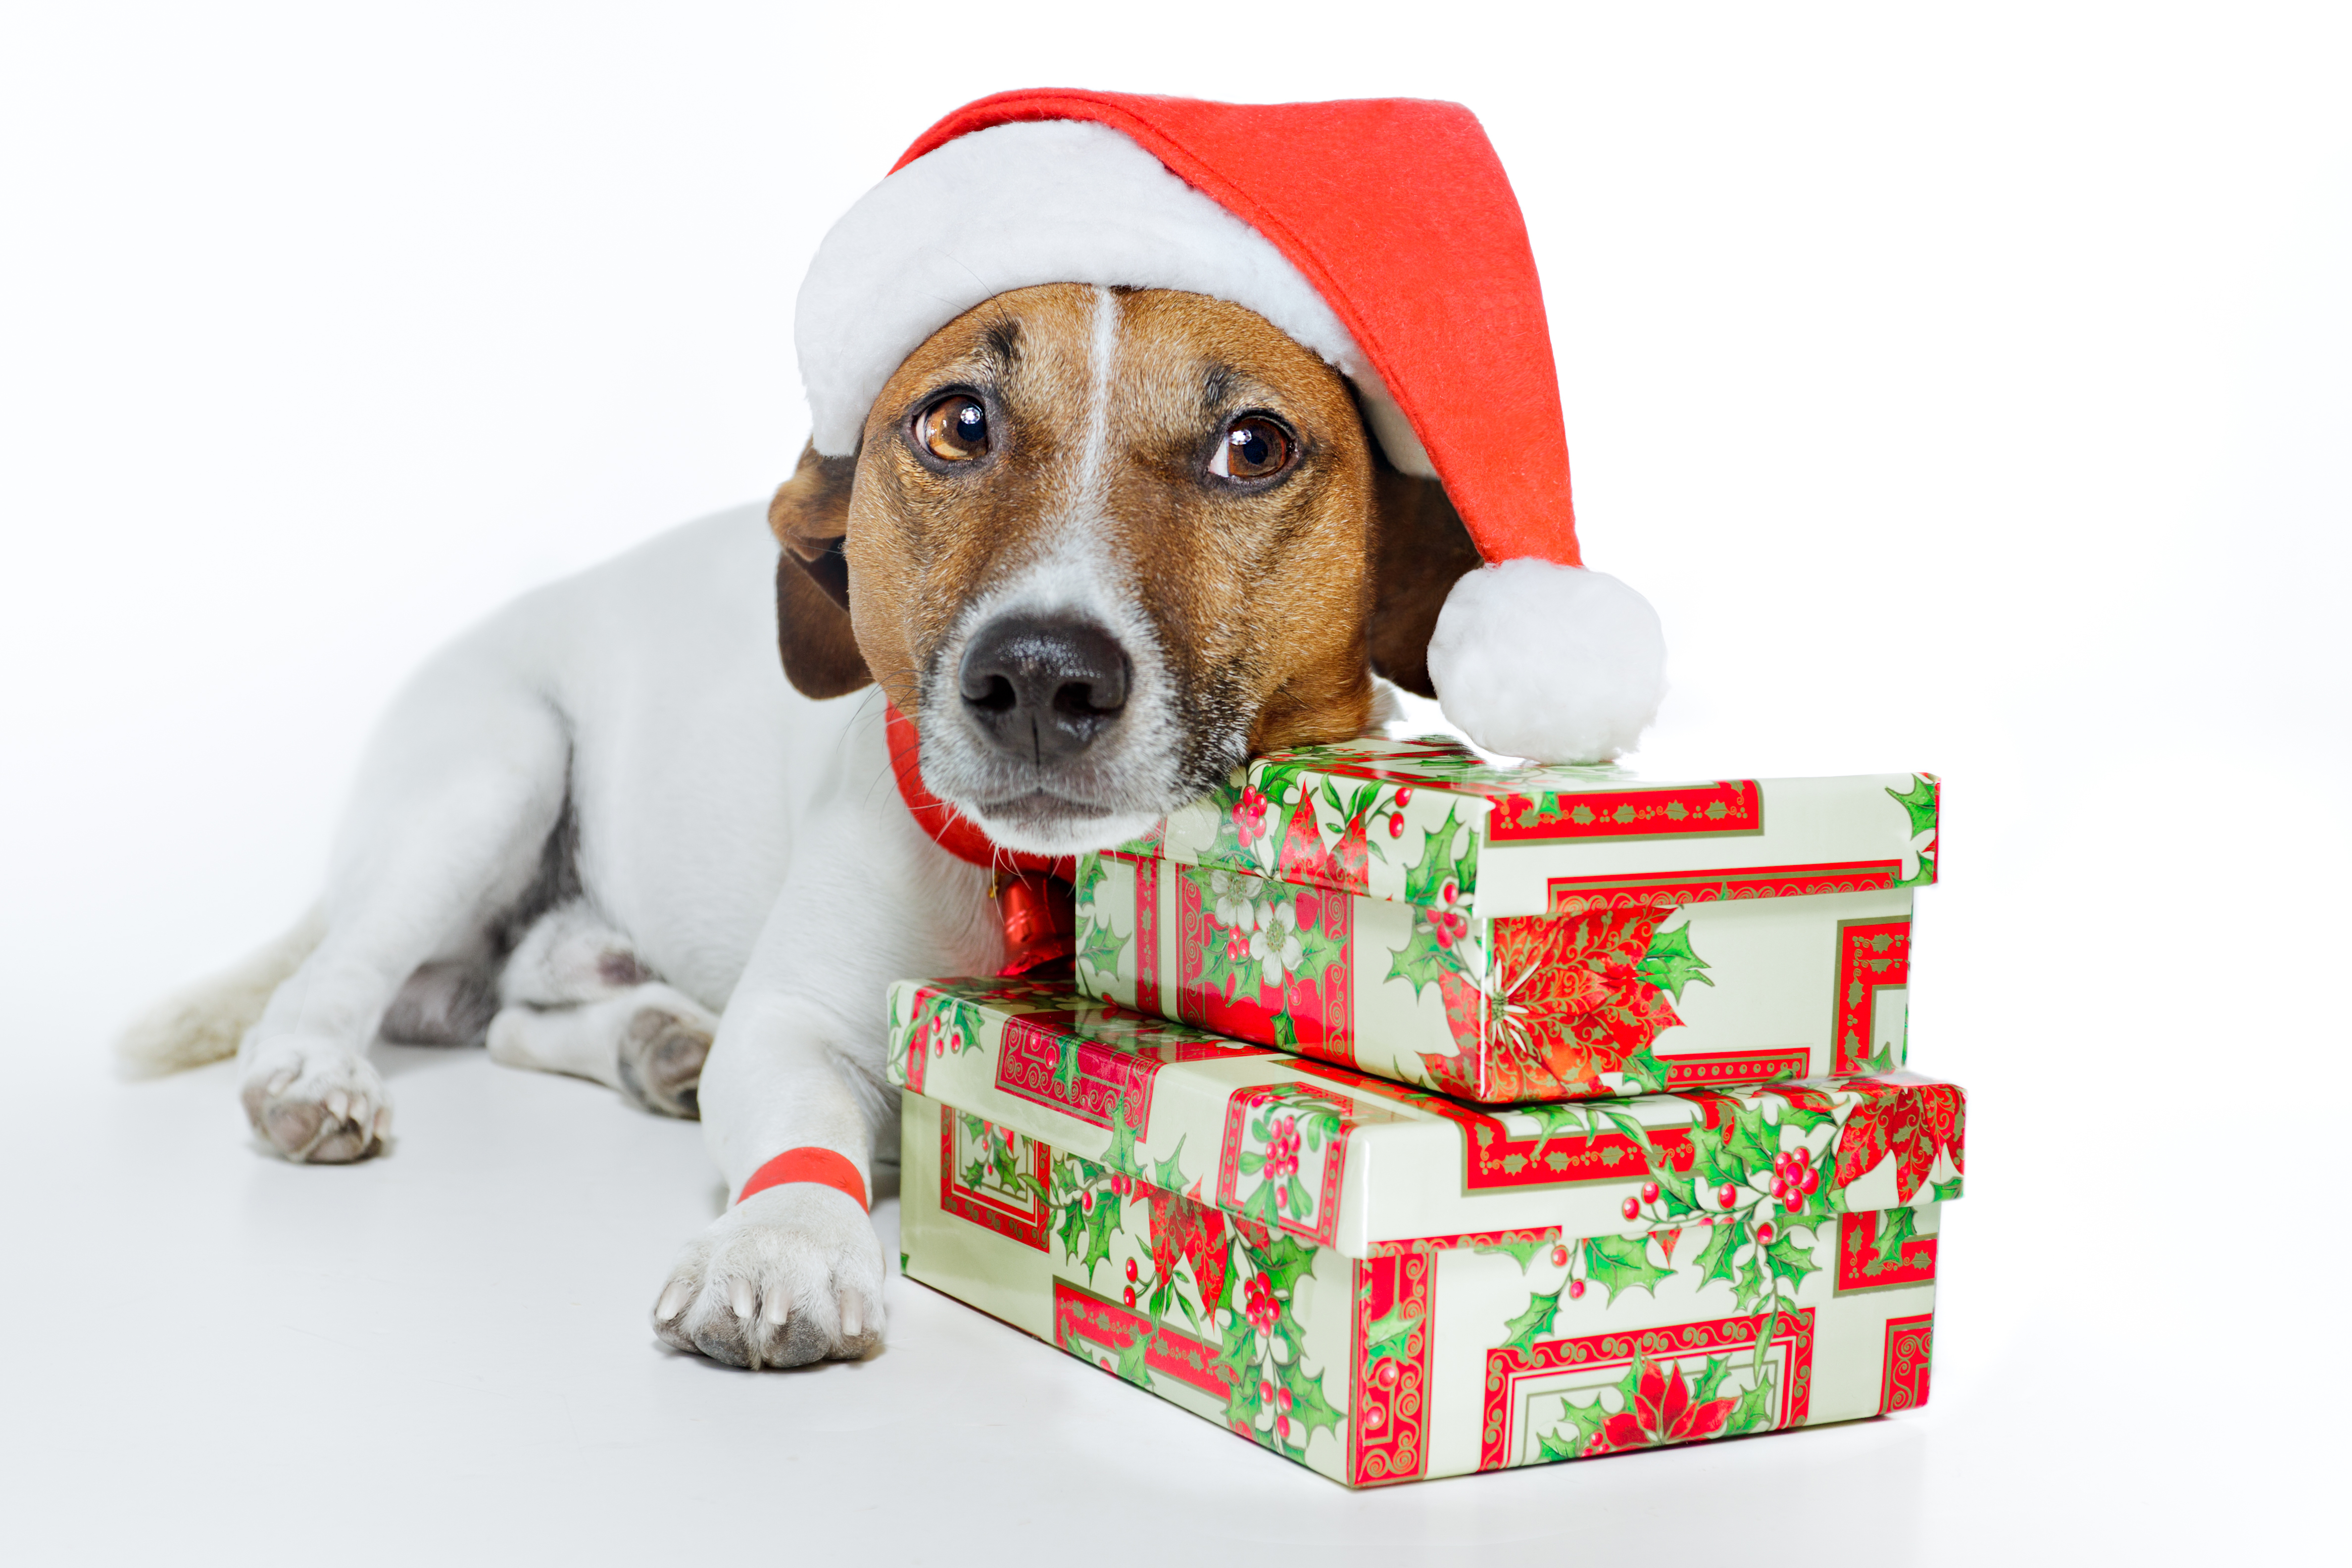 Guarding The Gifts